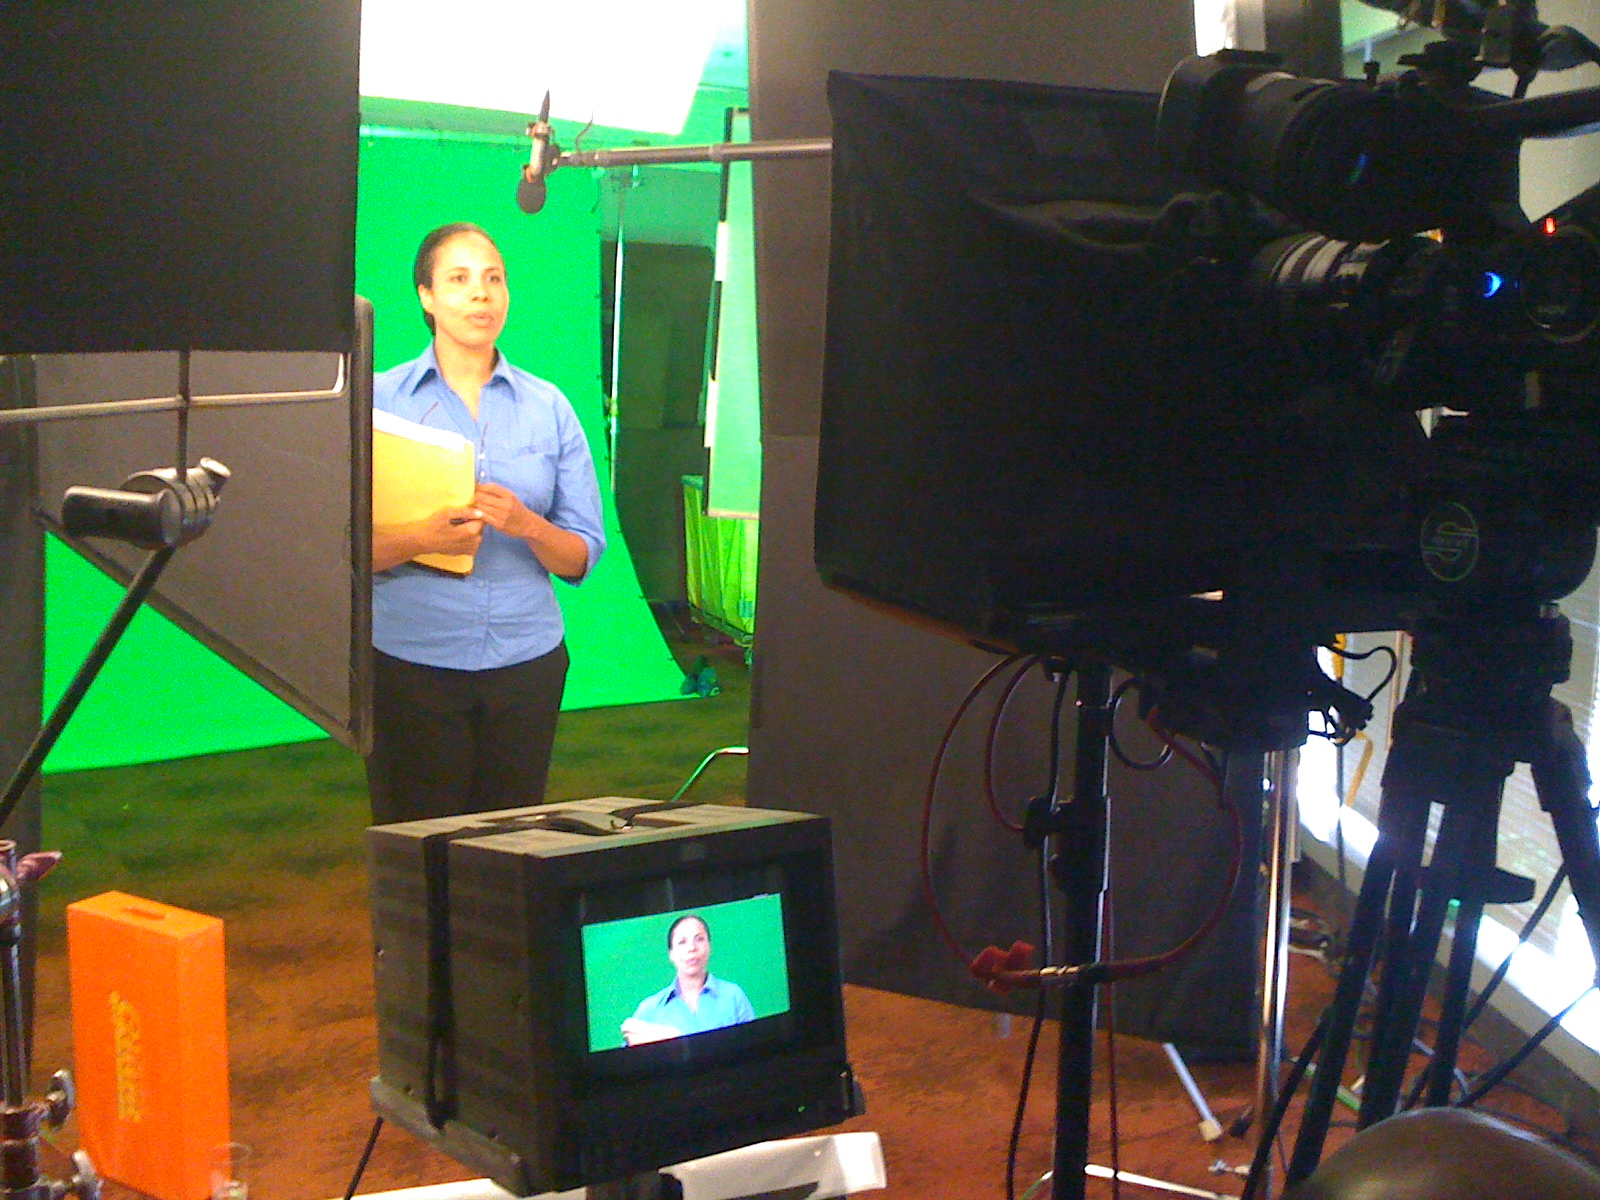 Green Screen Through the Lens